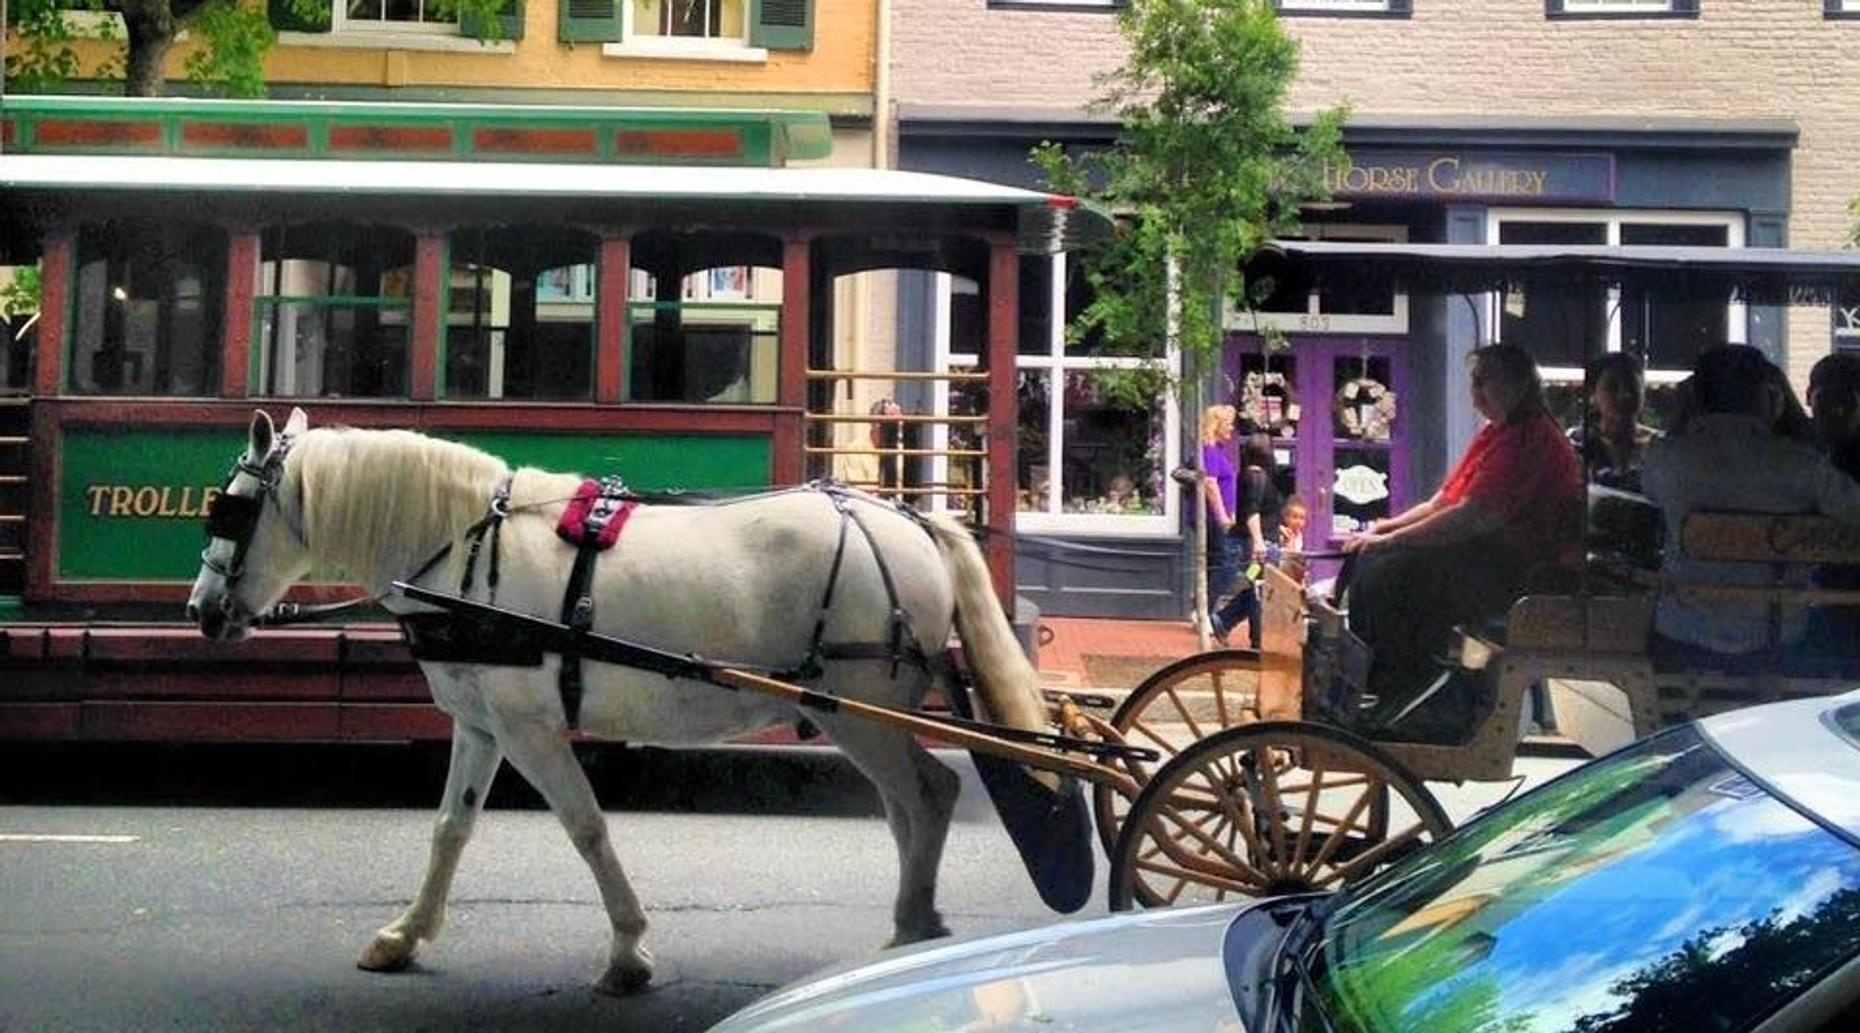 Historical Group Carriage Tour